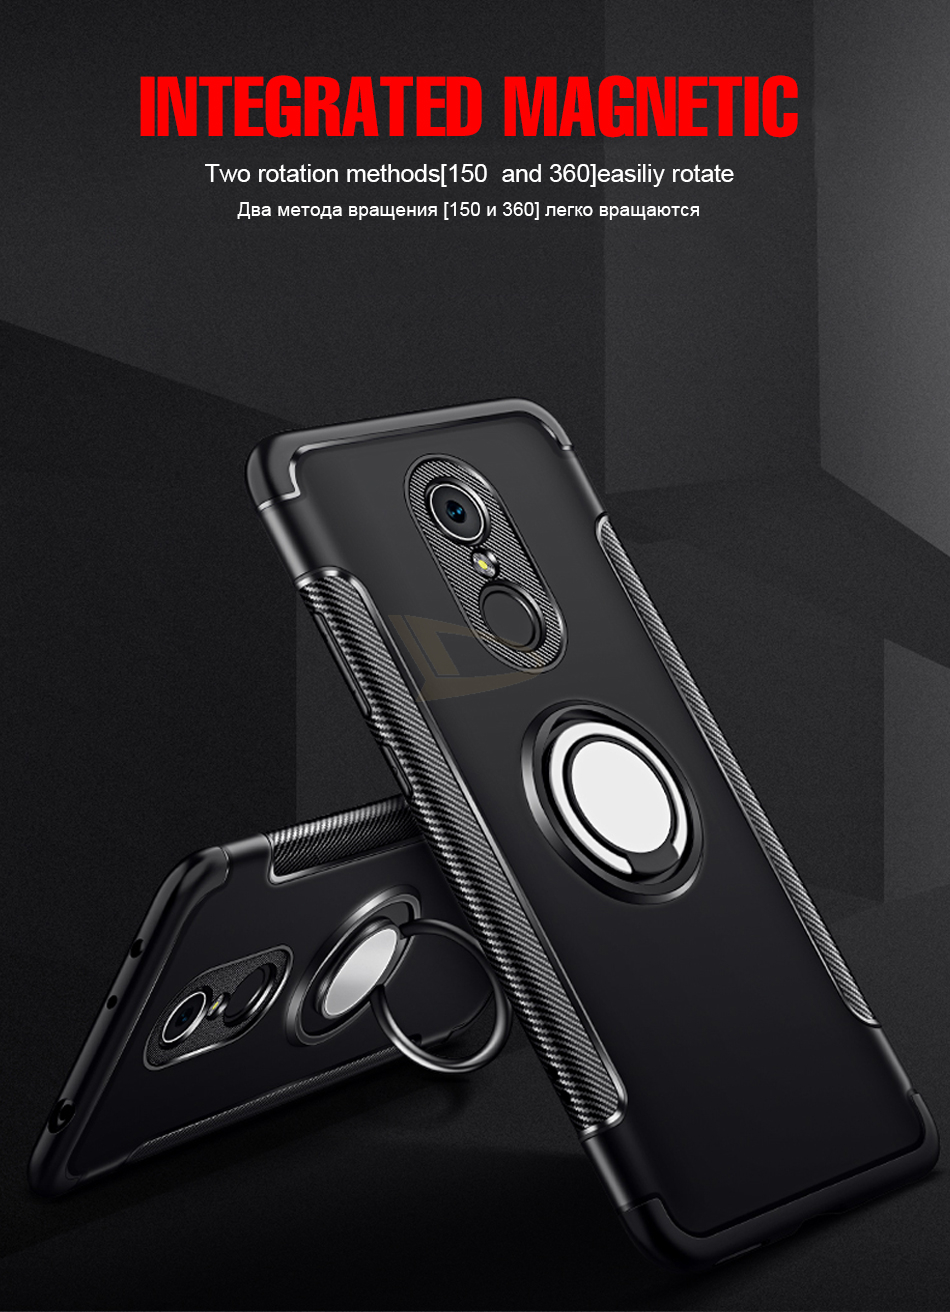 HTB1KAIZc6bguuRkHFrdq6z.LFXae Luxury Soft Shockproof Case For Xiaomi Redmi 4X Note 4 4X Full Cover For Redmi 5 PLus Note 7 Pro 6 6A Hard PC Bracket Ring Cases